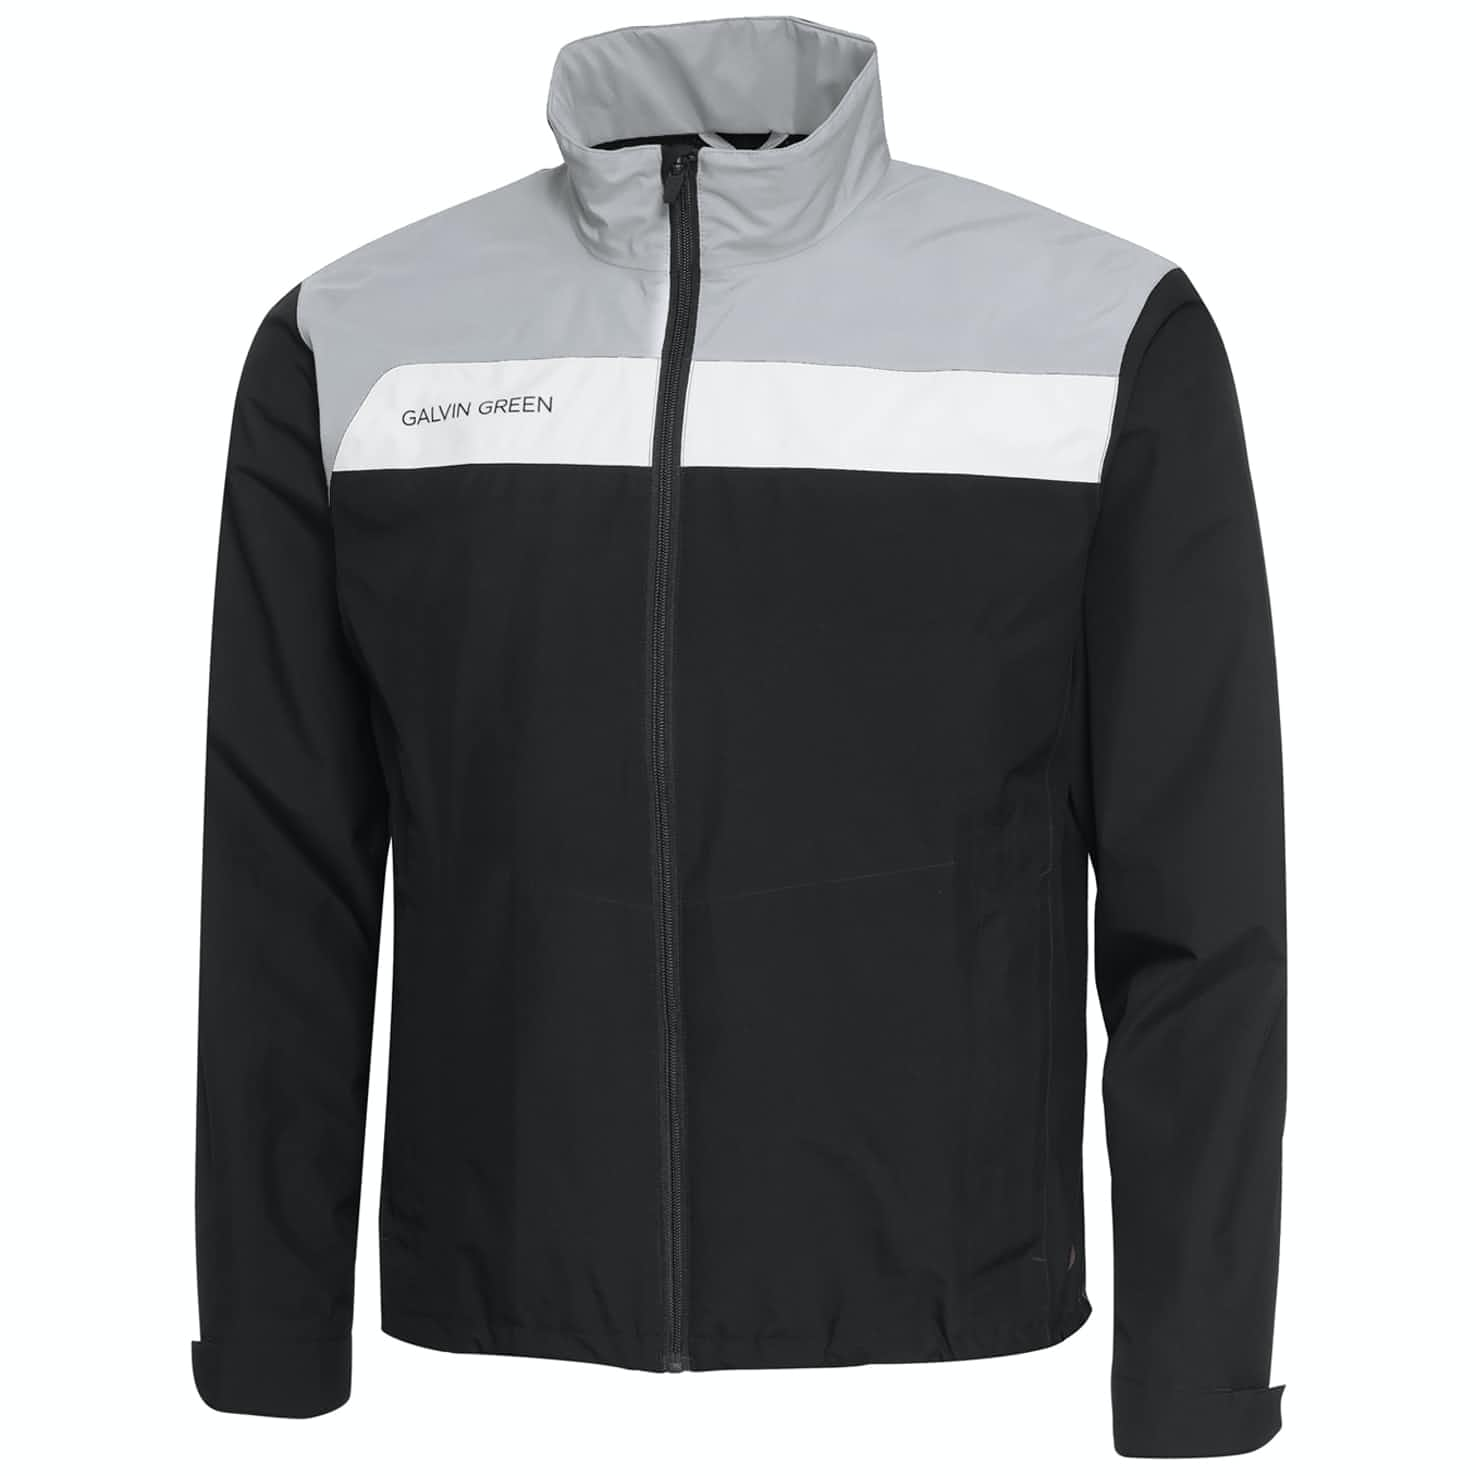 Austin Gore-Tex Jacket Black/Steel Grey/White - SS19